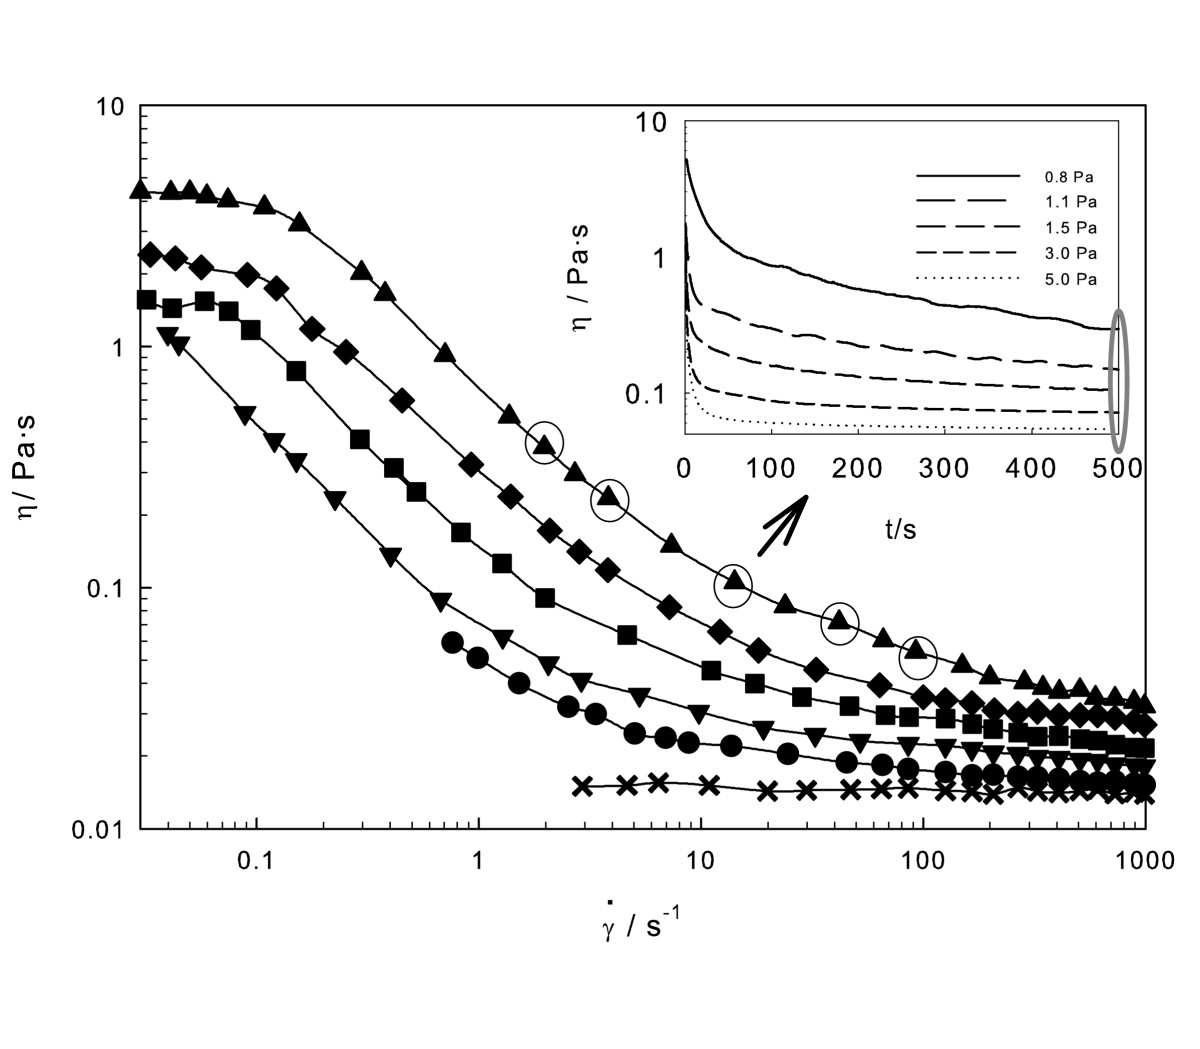 http://static-content.springer.com/image/art%3A10.1186%2F1556-276X-6-560/MediaObjects/11671_2011_Article_314_Fig1_HTML.jpg